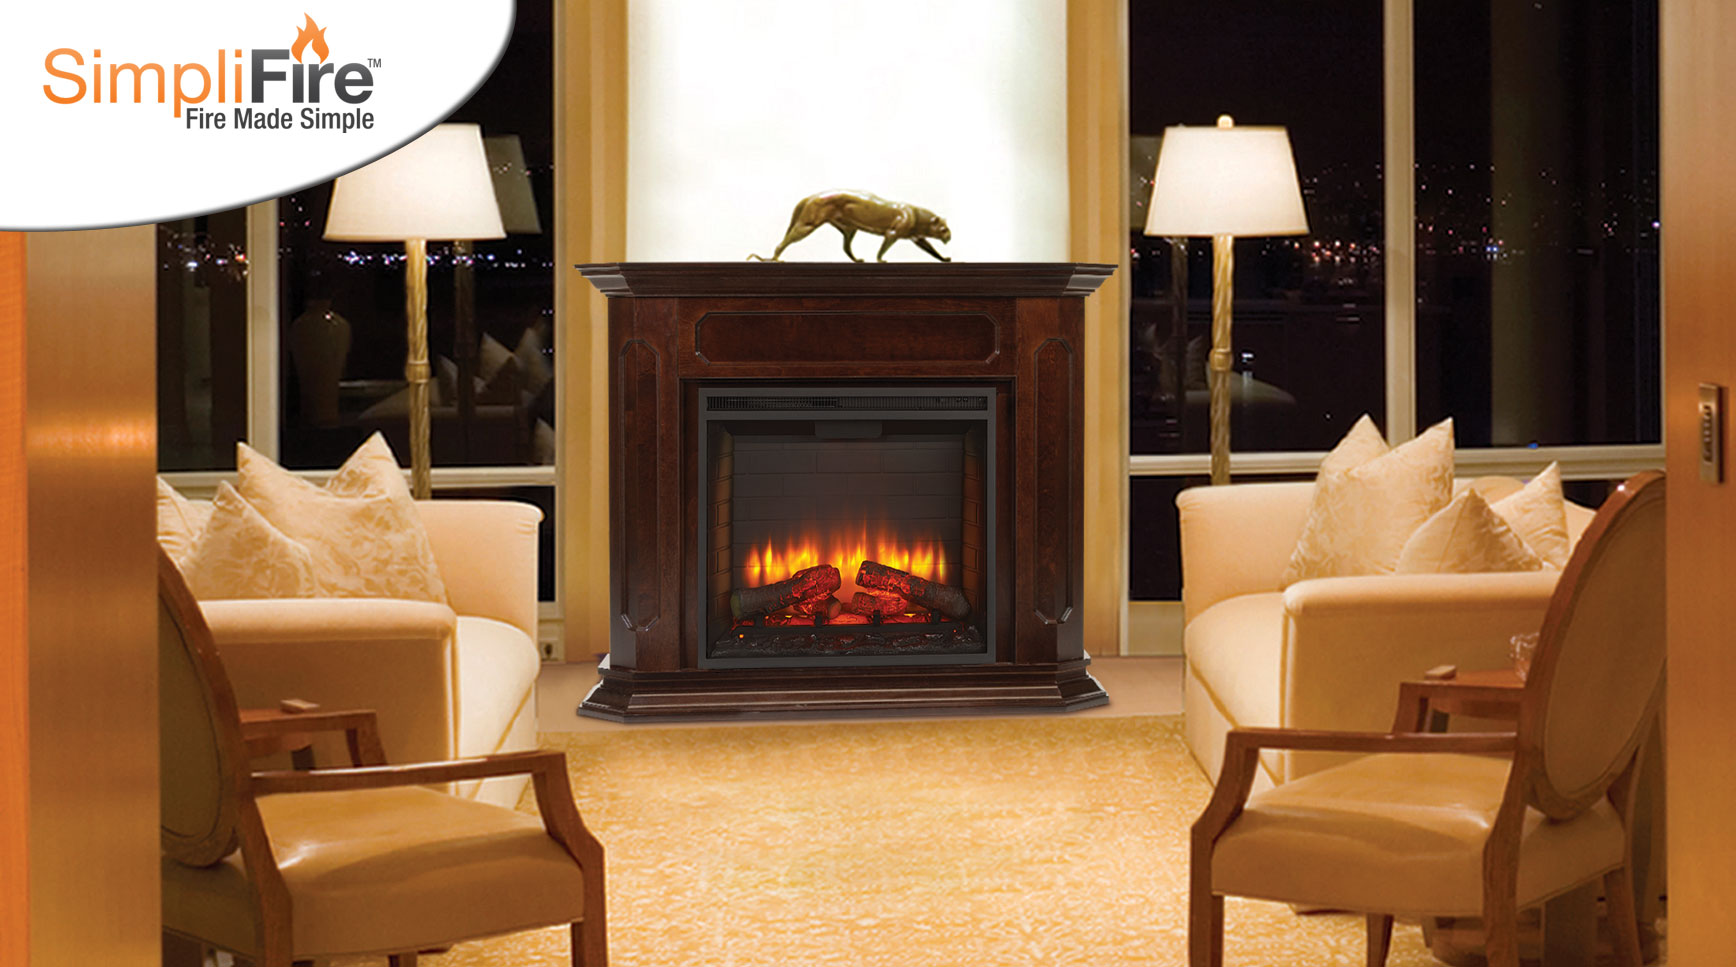 direct clean log face area with a of air onyx majestic sleek this plus robust wide vent modern by complete an fireplaces sophistication premium viewing set styling fireplace provides